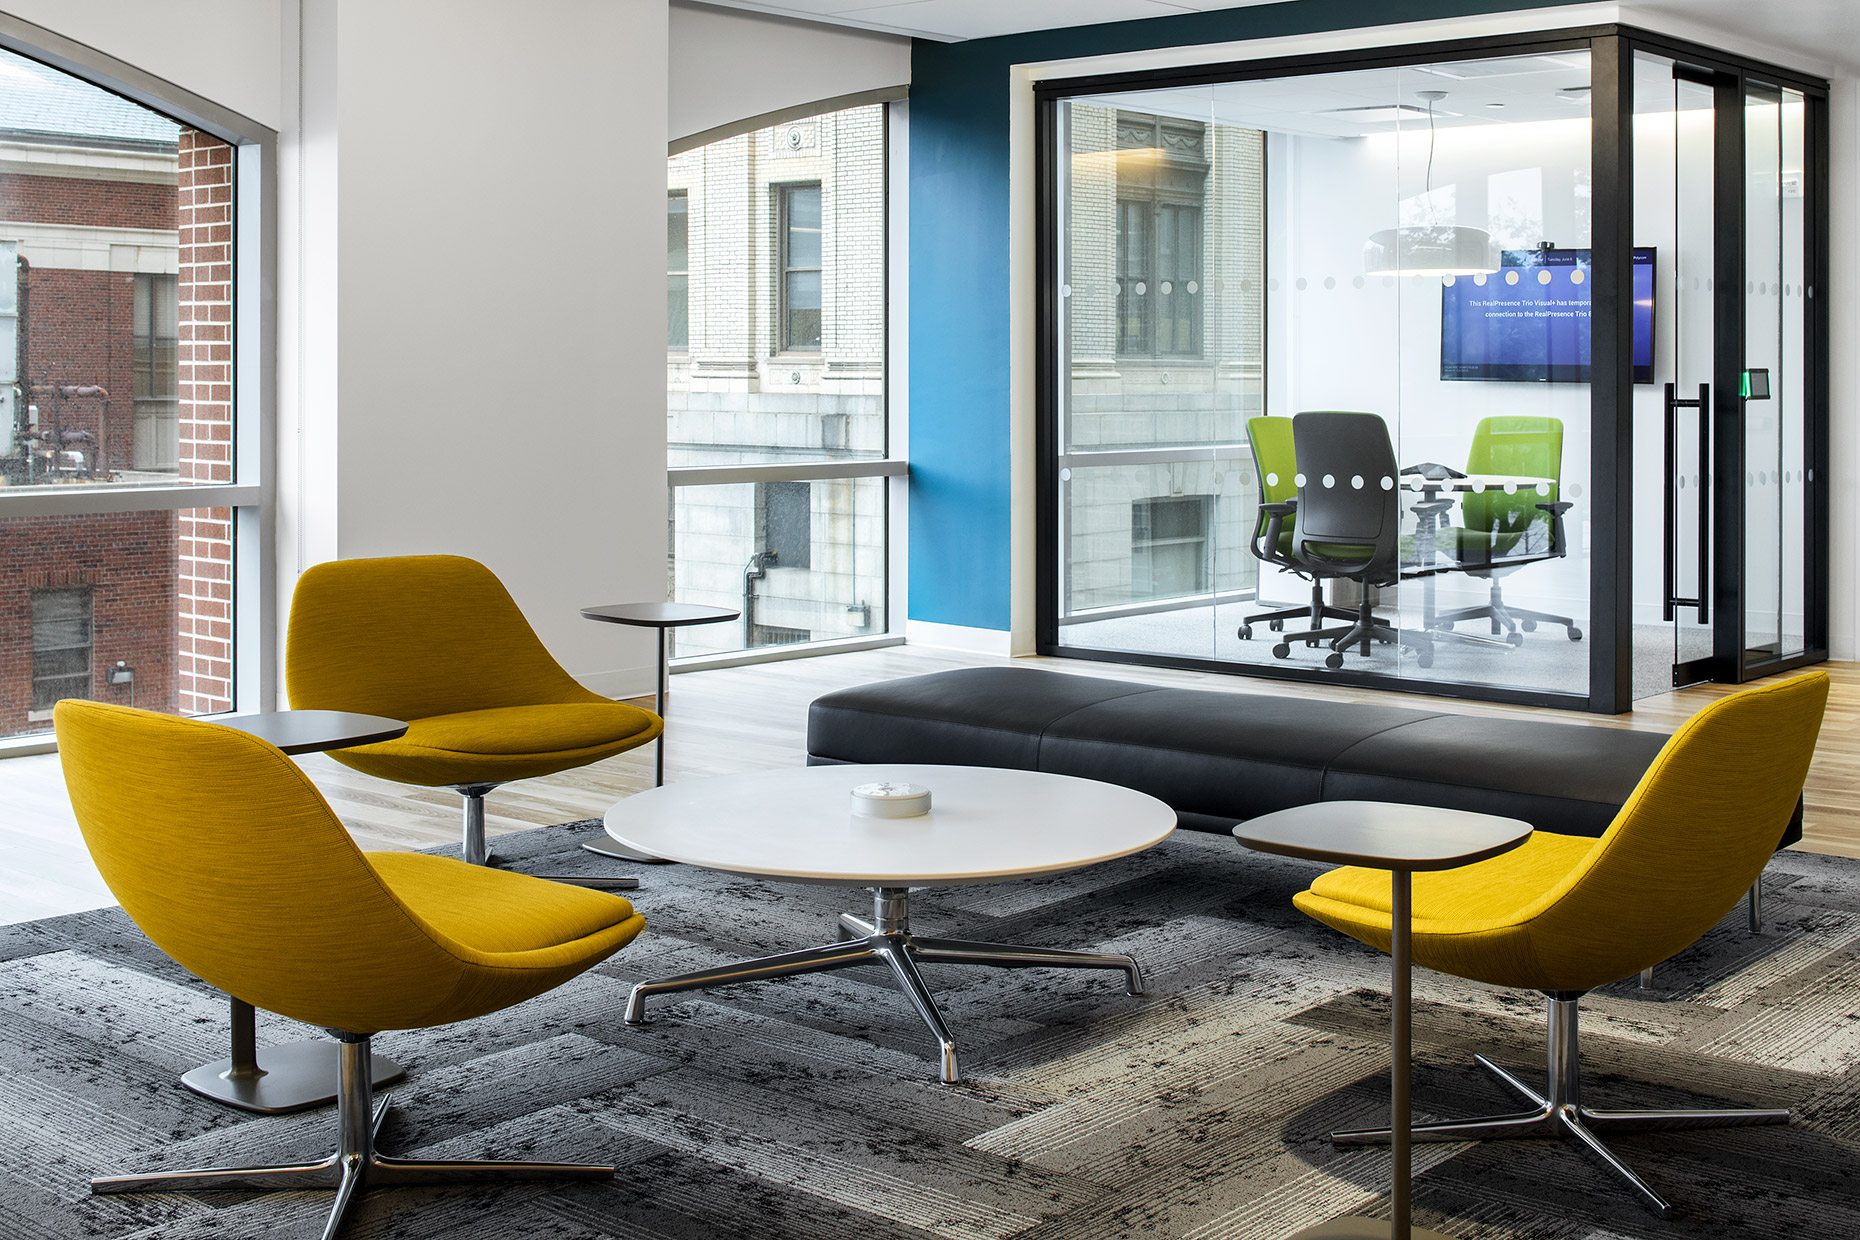 Wiley modern office with lounge seating and conference room with glass walls